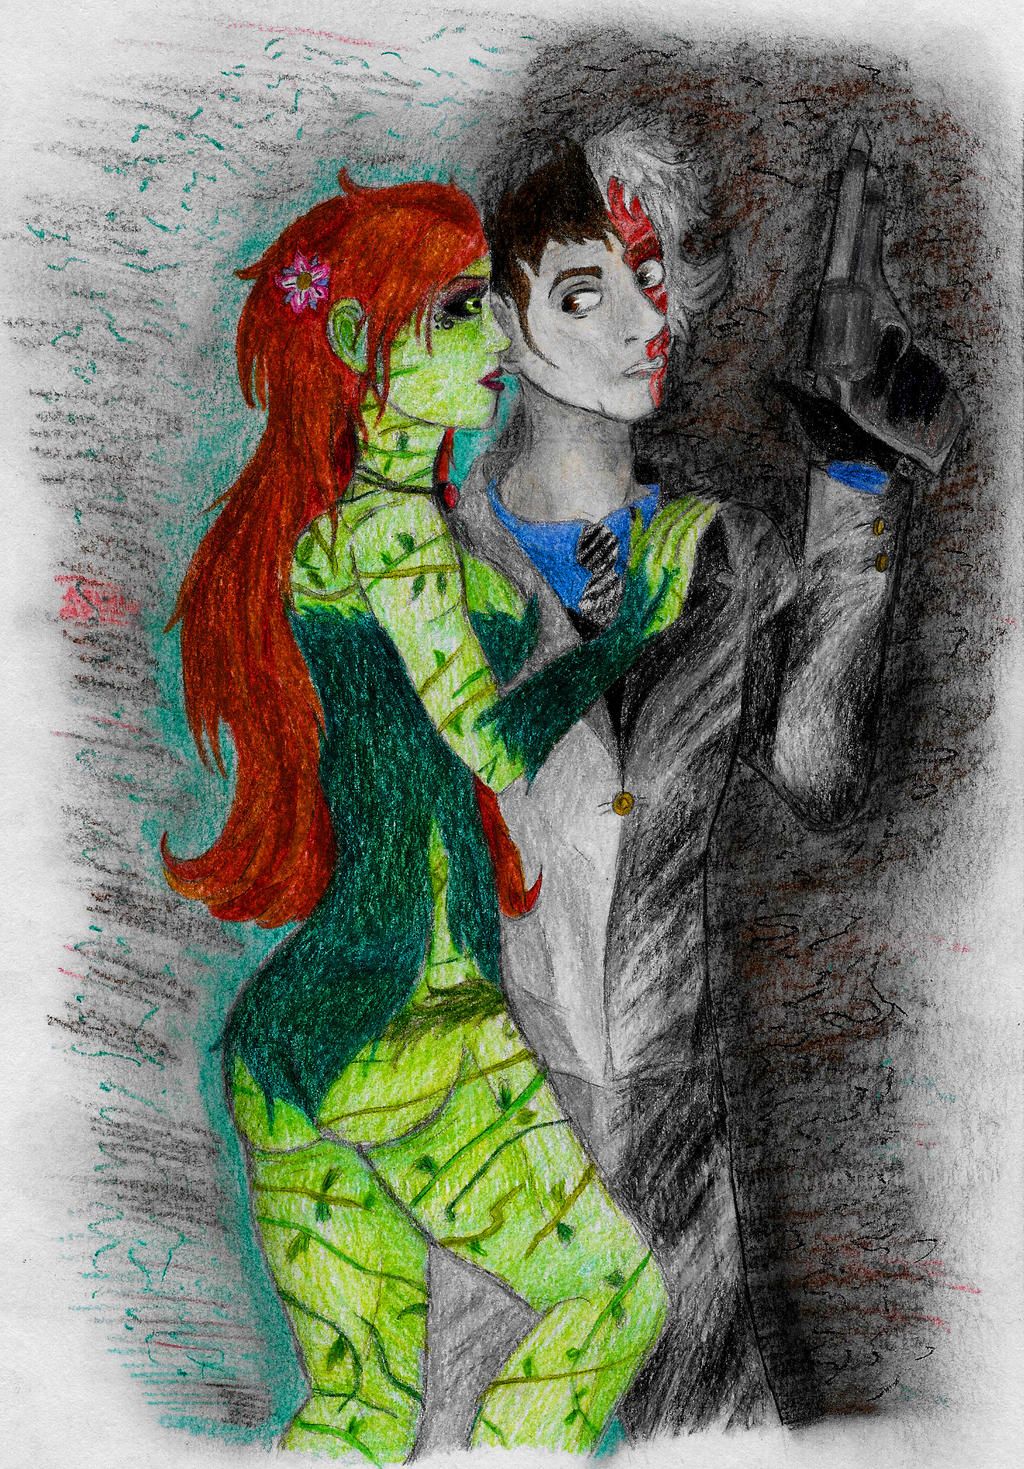 And what does the other side want? by ZalyHeartlessTigress